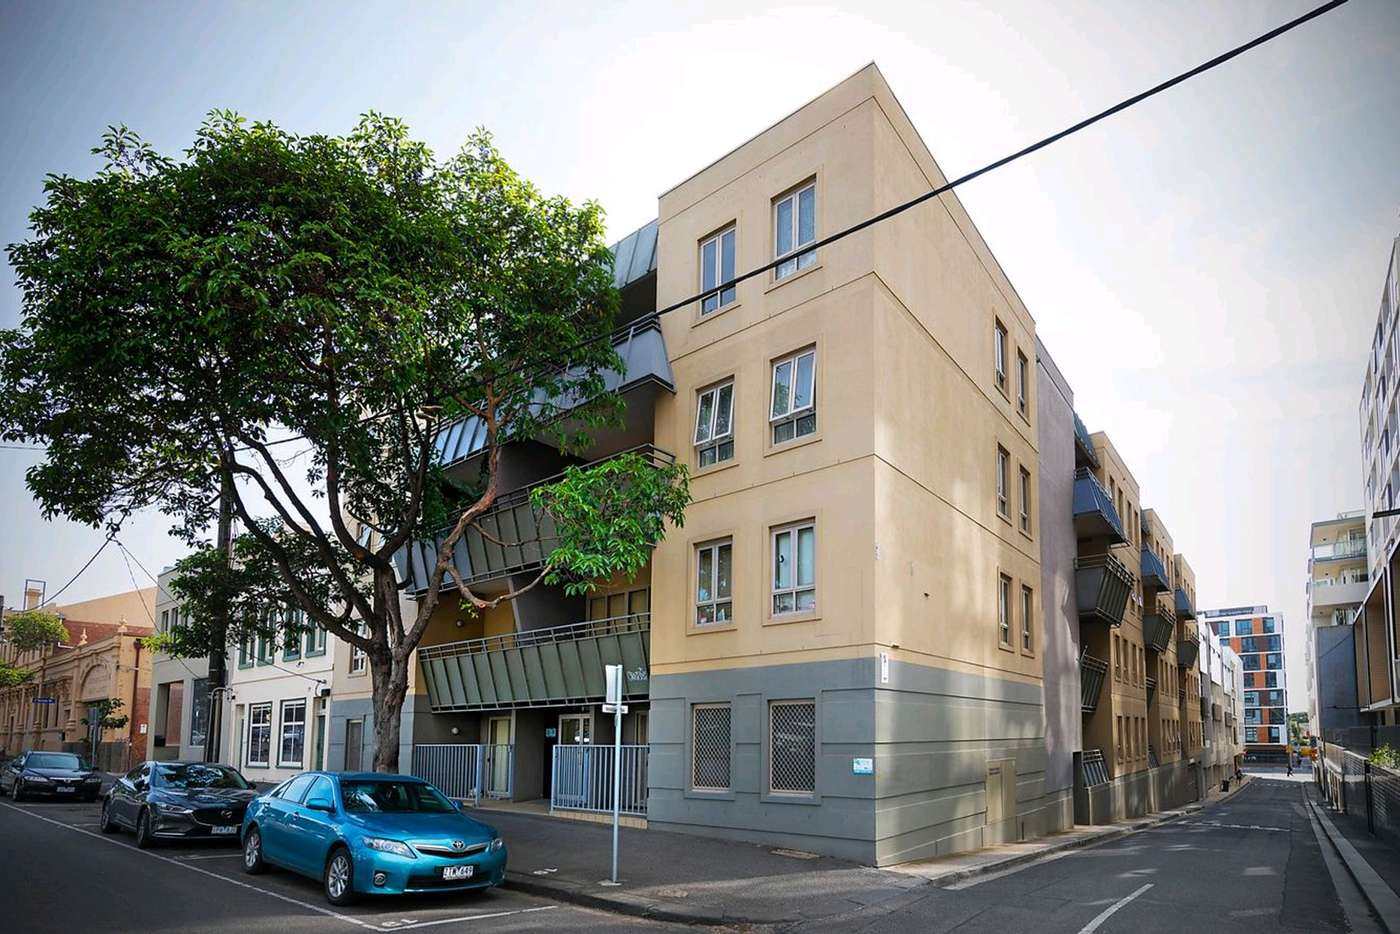 Main view of Homely apartment listing, 2/17-21 Blackwood Street, North Melbourne VIC 3051